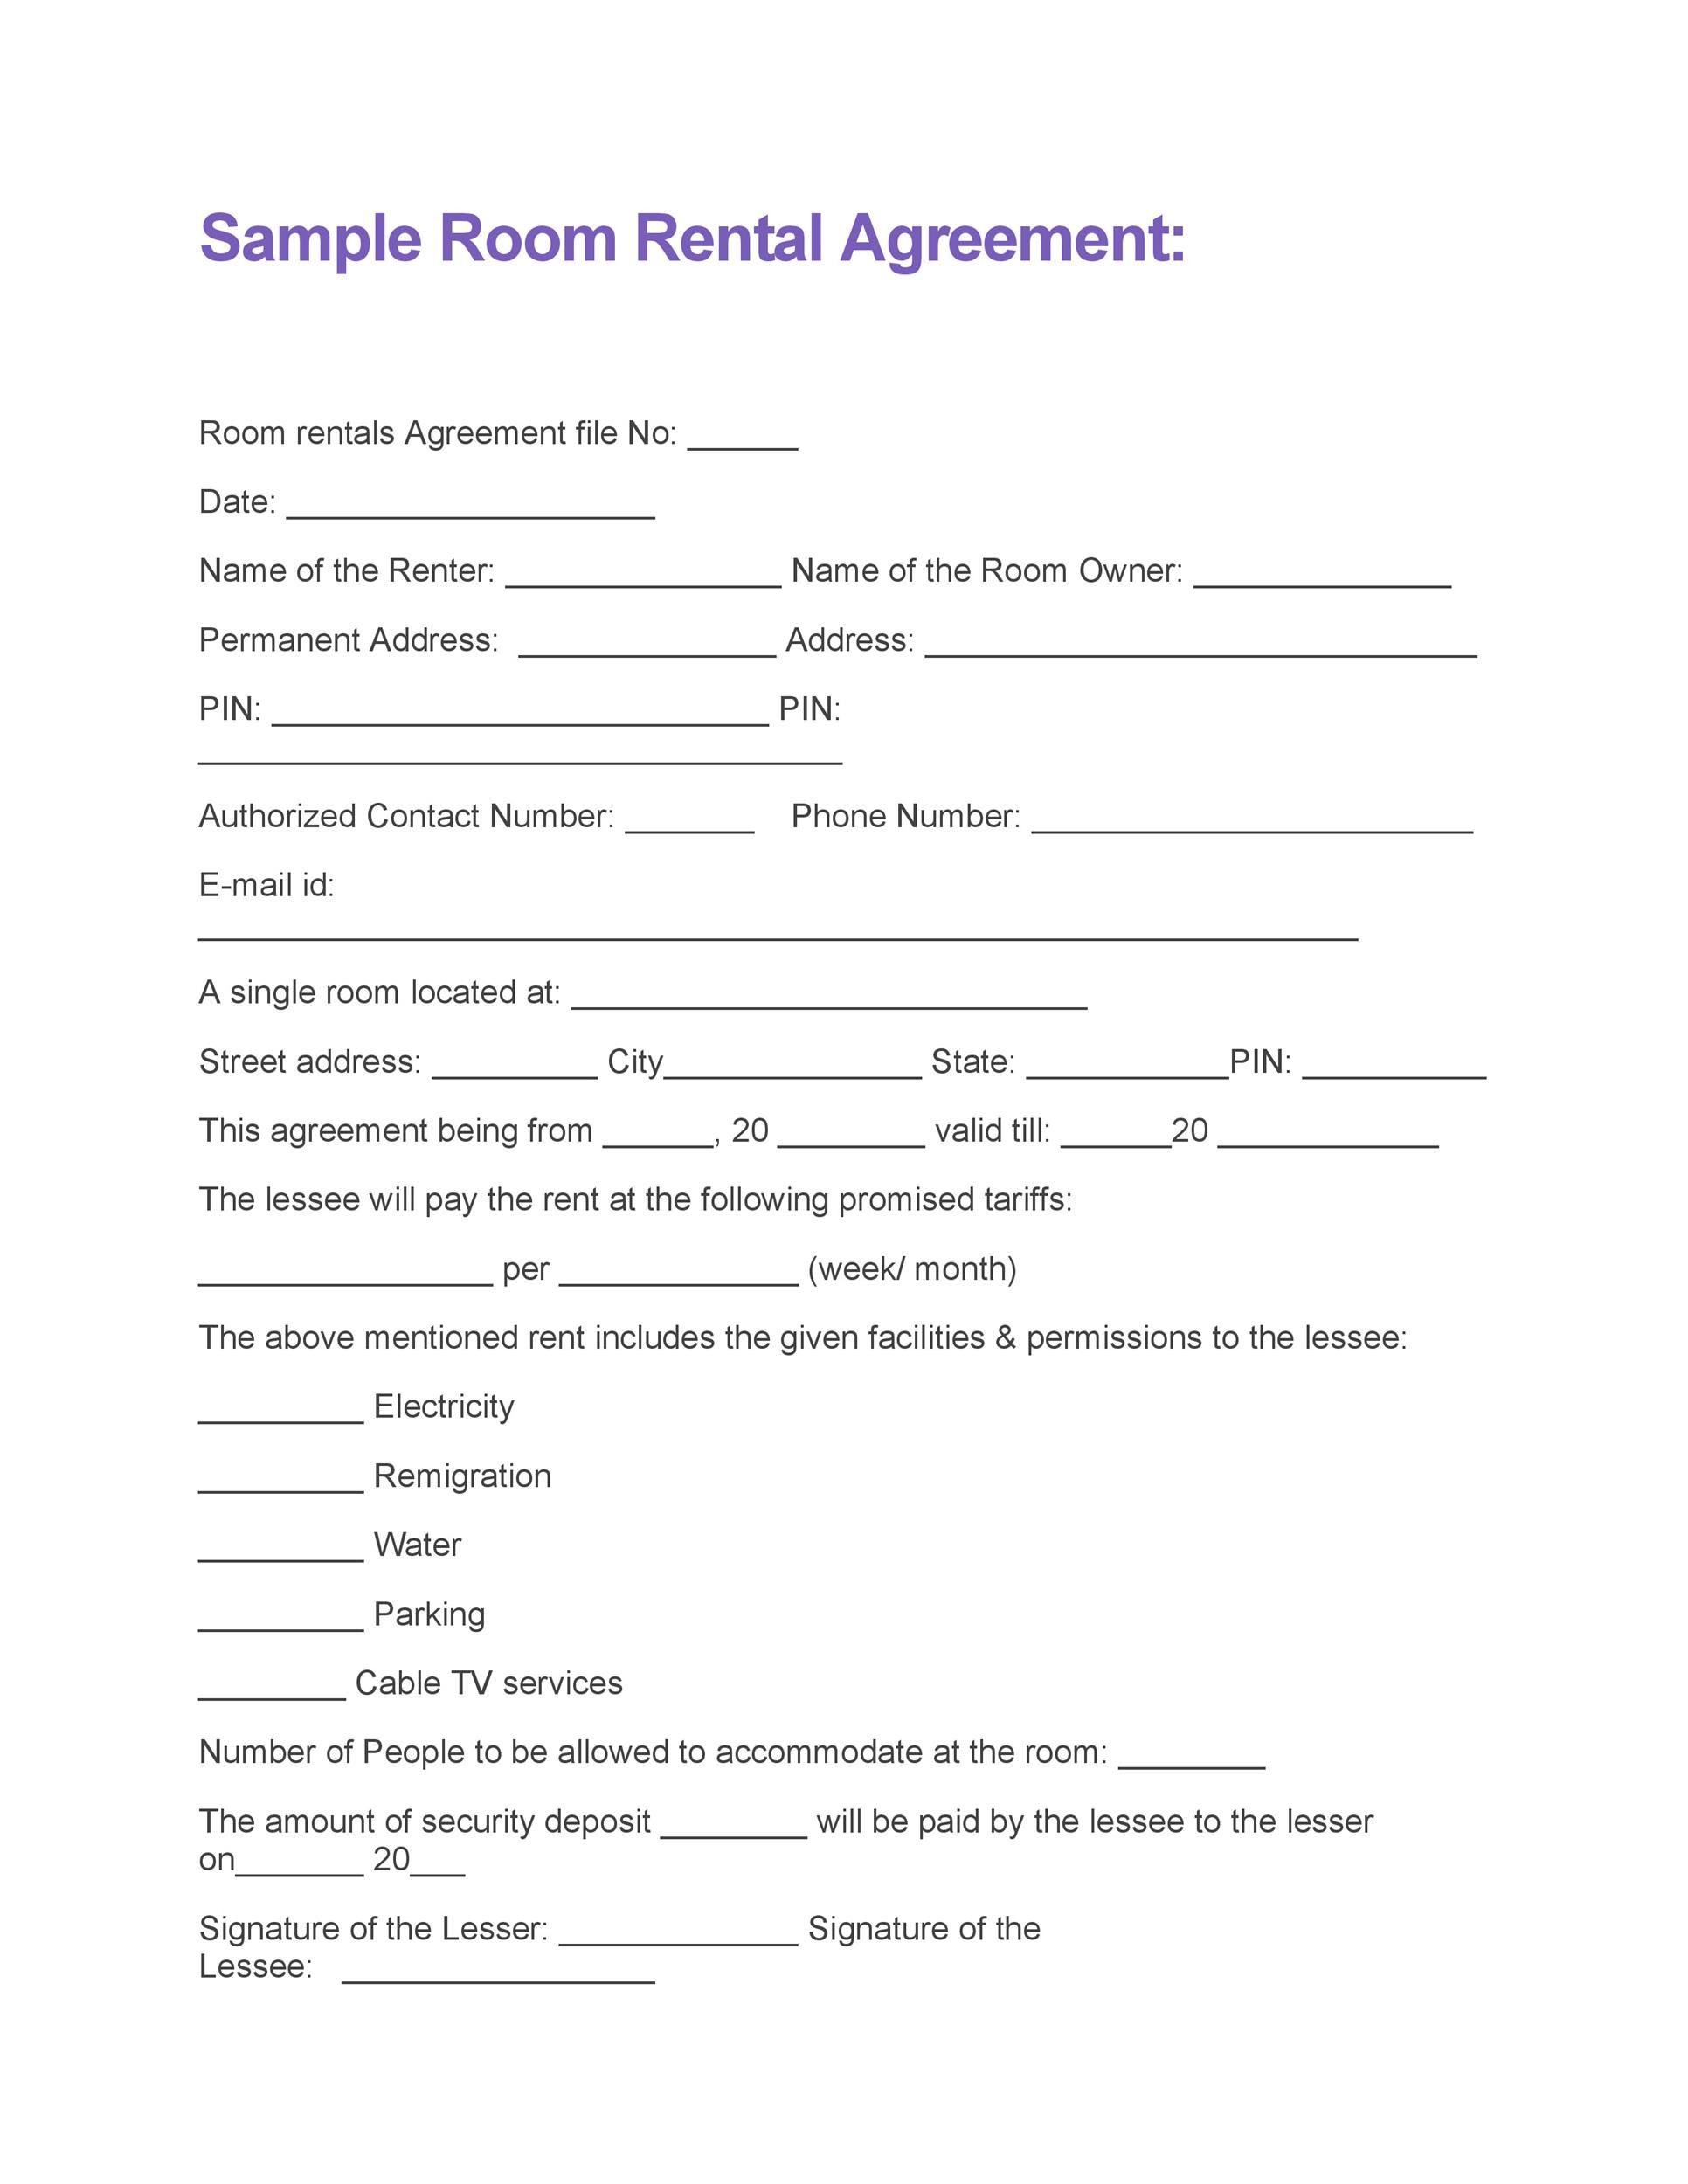 Room Rental Contract. Printable Sample Rental Lease Agreement